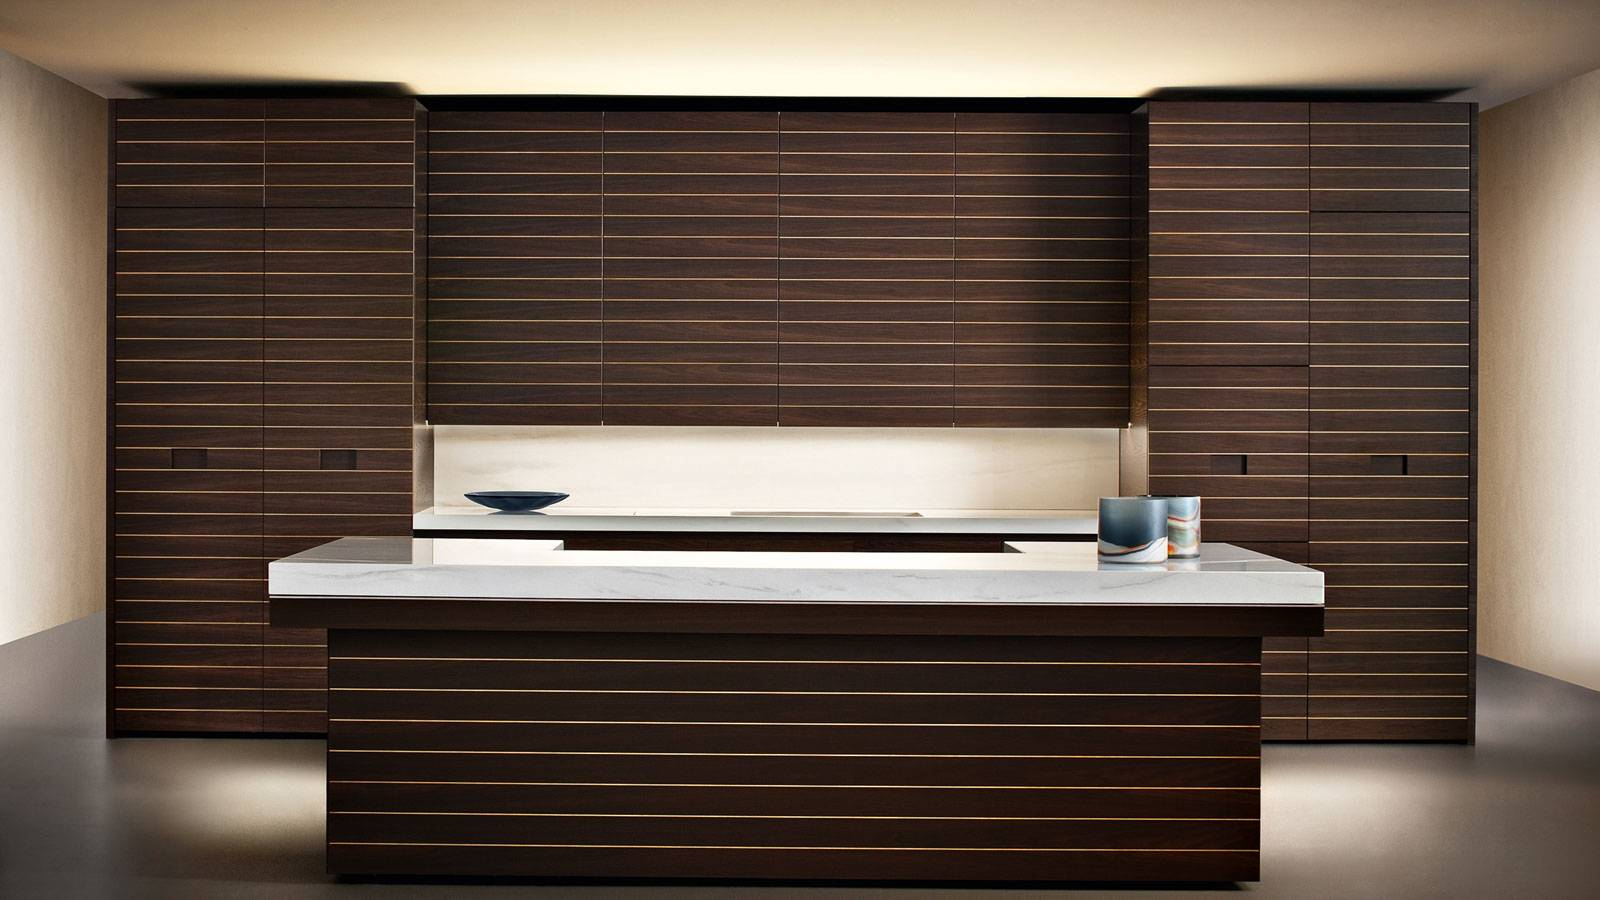 kitchen design by Giorgio Armani for Dada